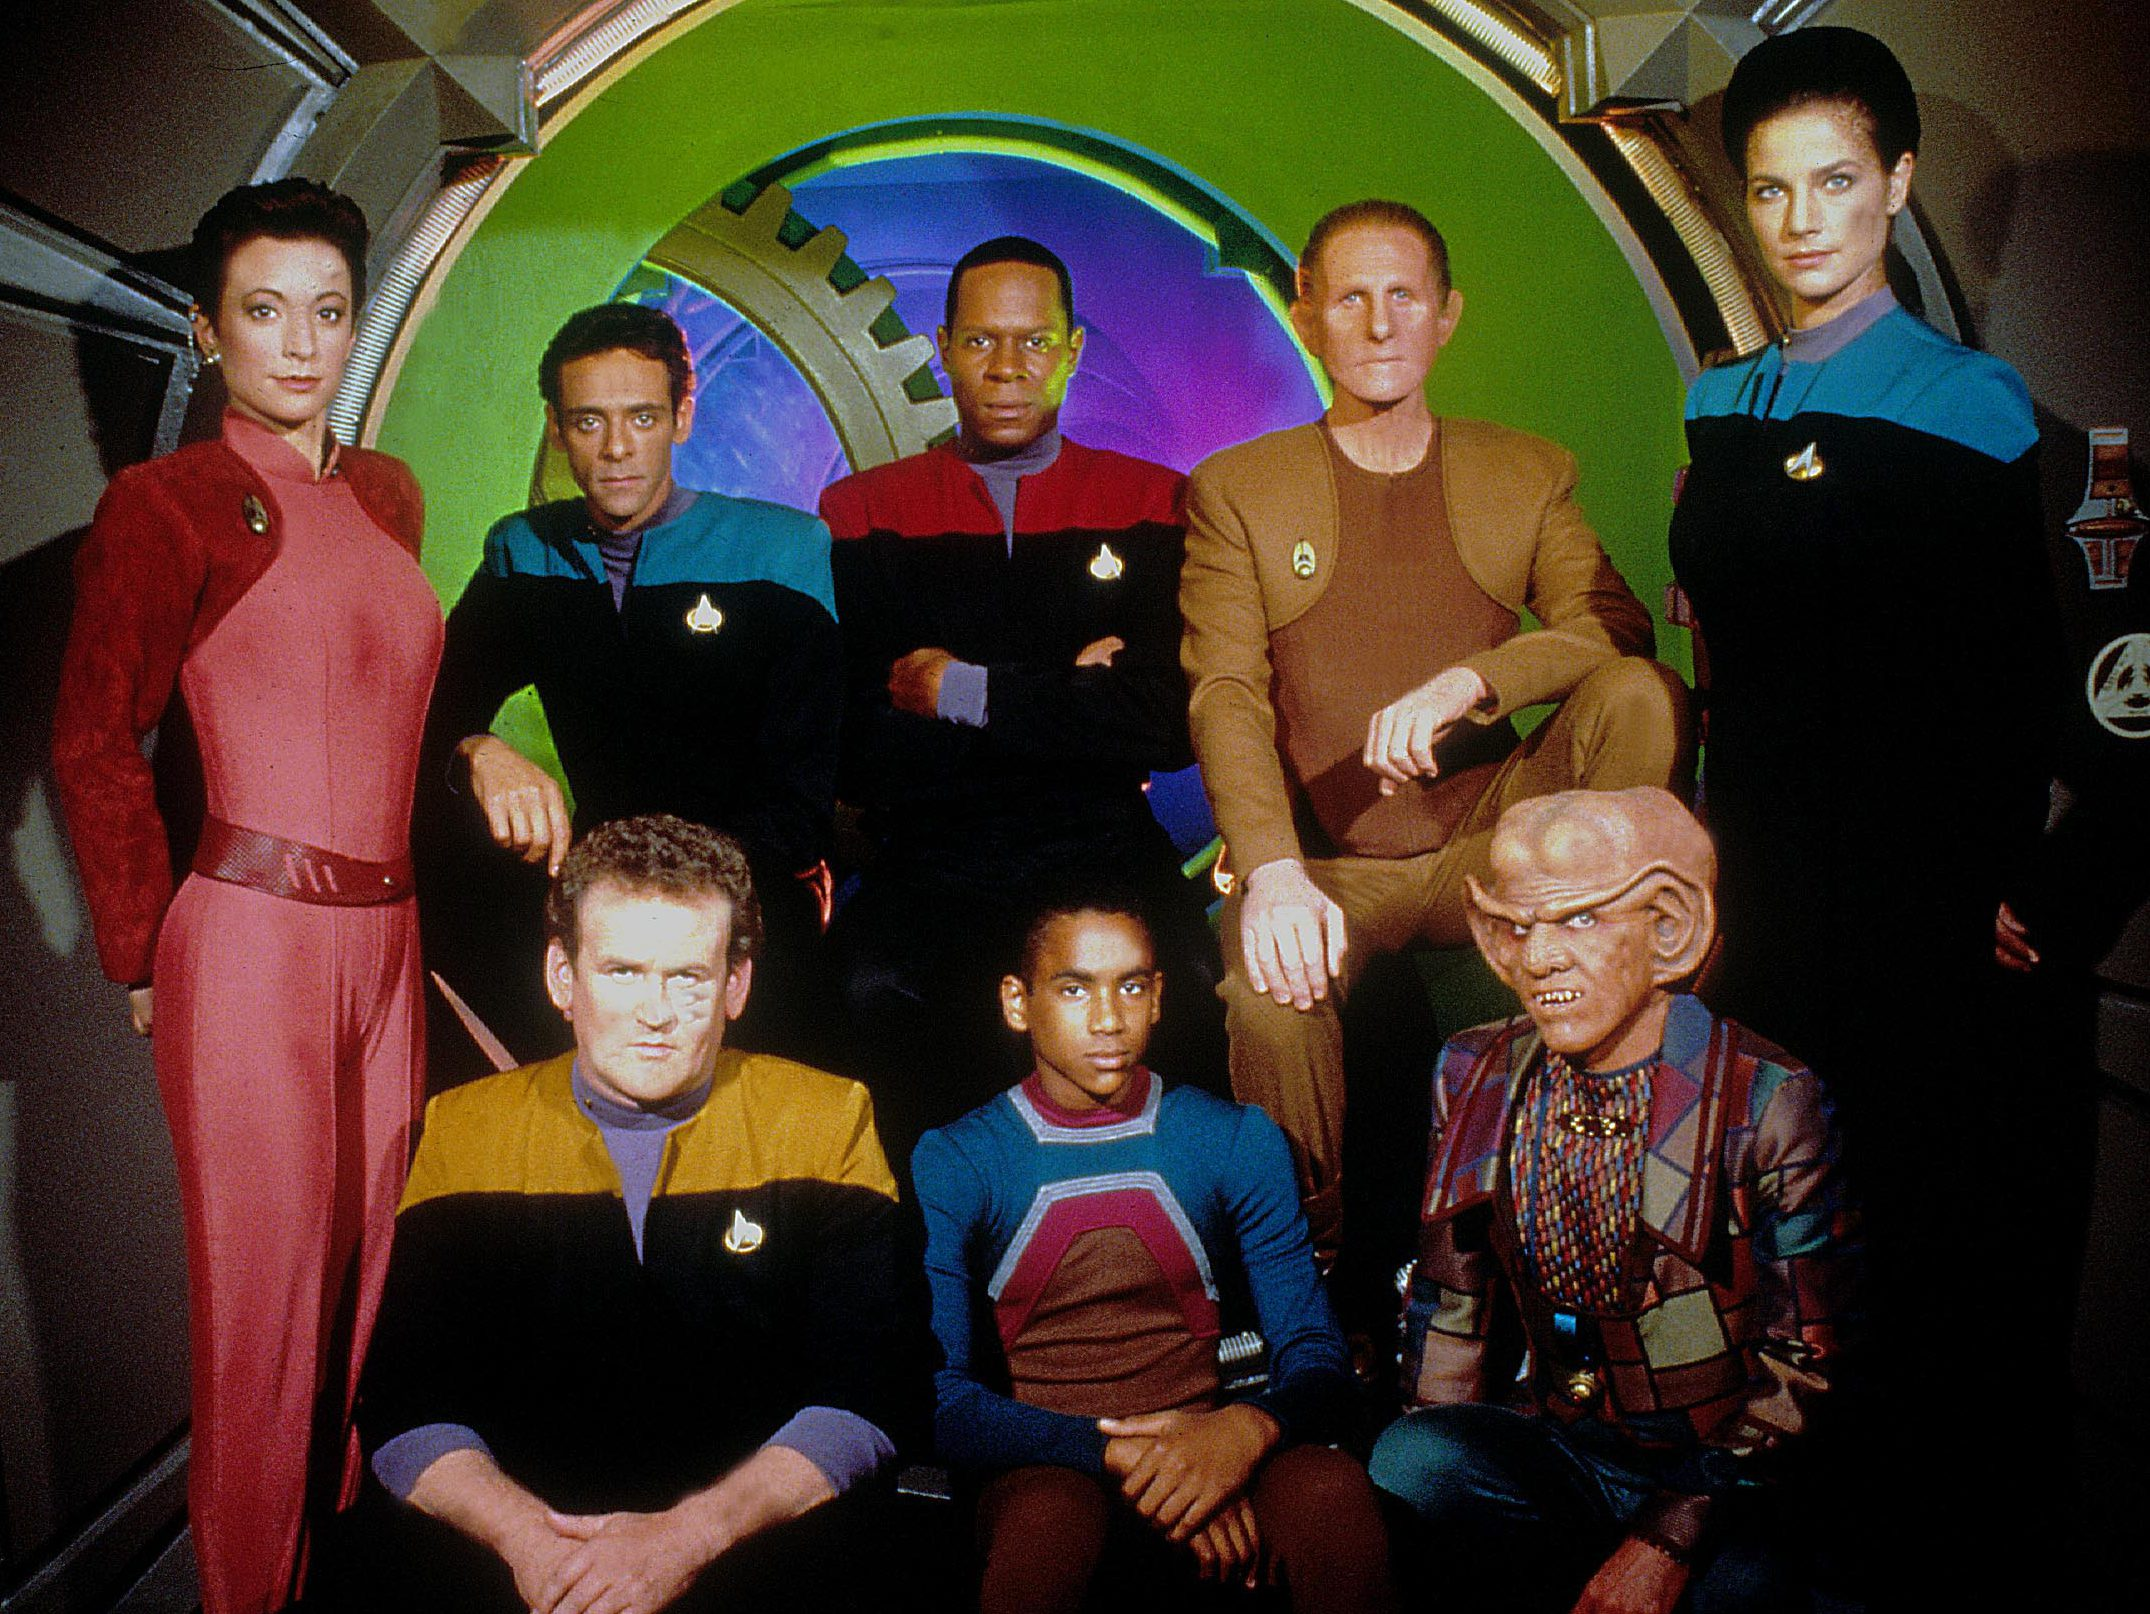 No Merchandising. Editorial Use Only. No Book Cover Usage.Mandatory Credit: Photo by Moviestore/REX/ (1613720a)Star Trek: Deep Space Nine , Nana Visitor, Siddig El Fadil, Avery Brooks, Rene Auberjonois, Terry Farrell, Colm Meaney, Cirroc Lofton, Armin ShimmermanFilm and Television